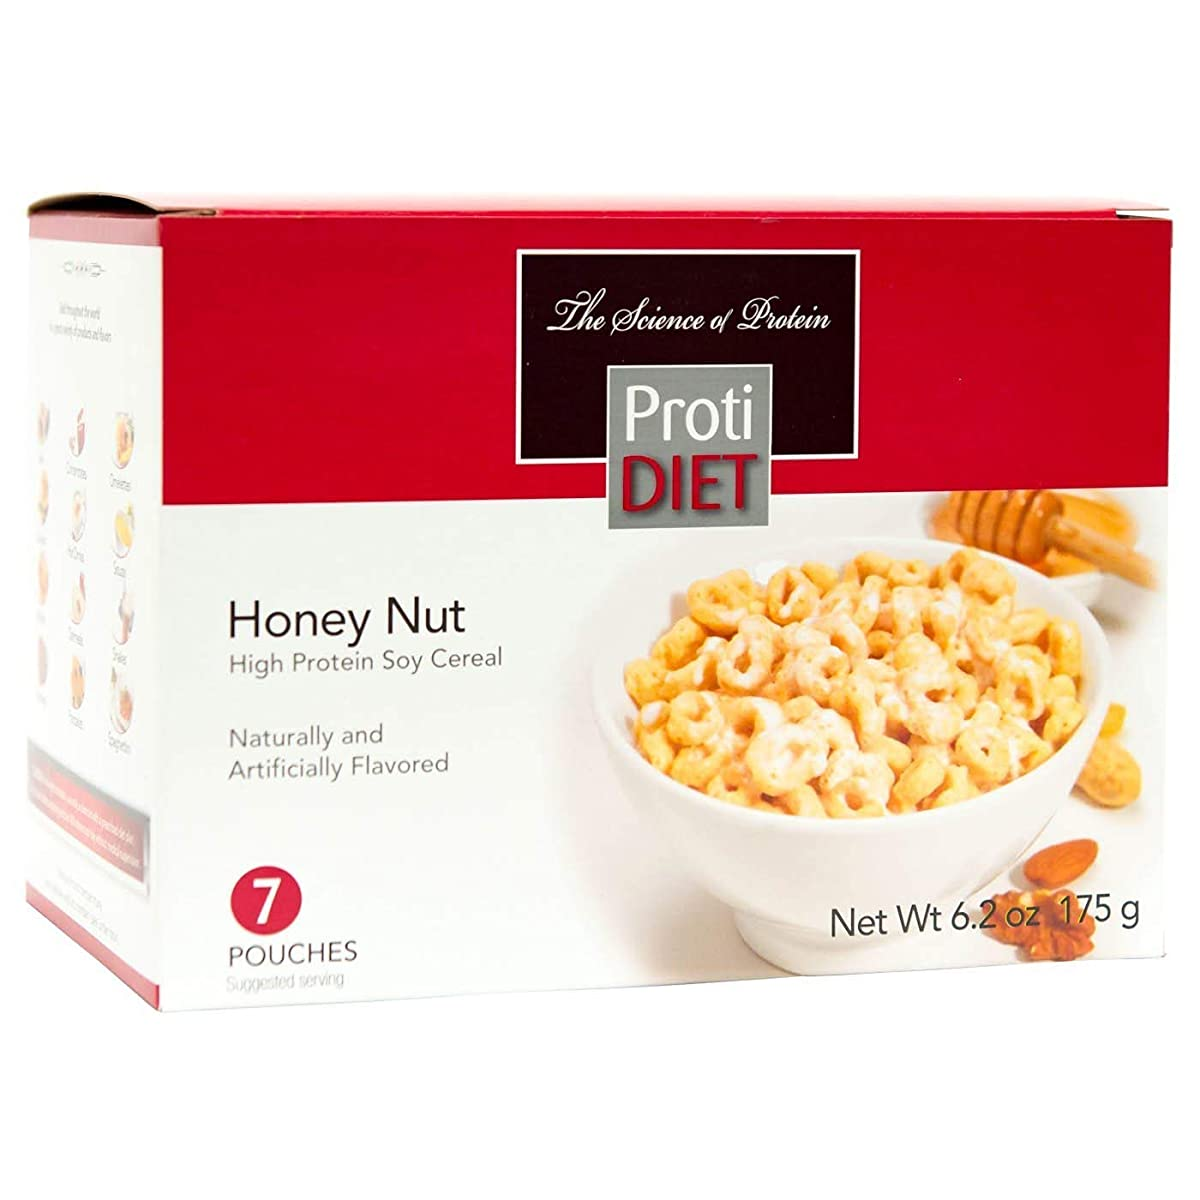 ProtiDiet Cereal - Honey Nut Soy (7/Box) - High Protein 15g - Low Calorie - High Fiber 4g